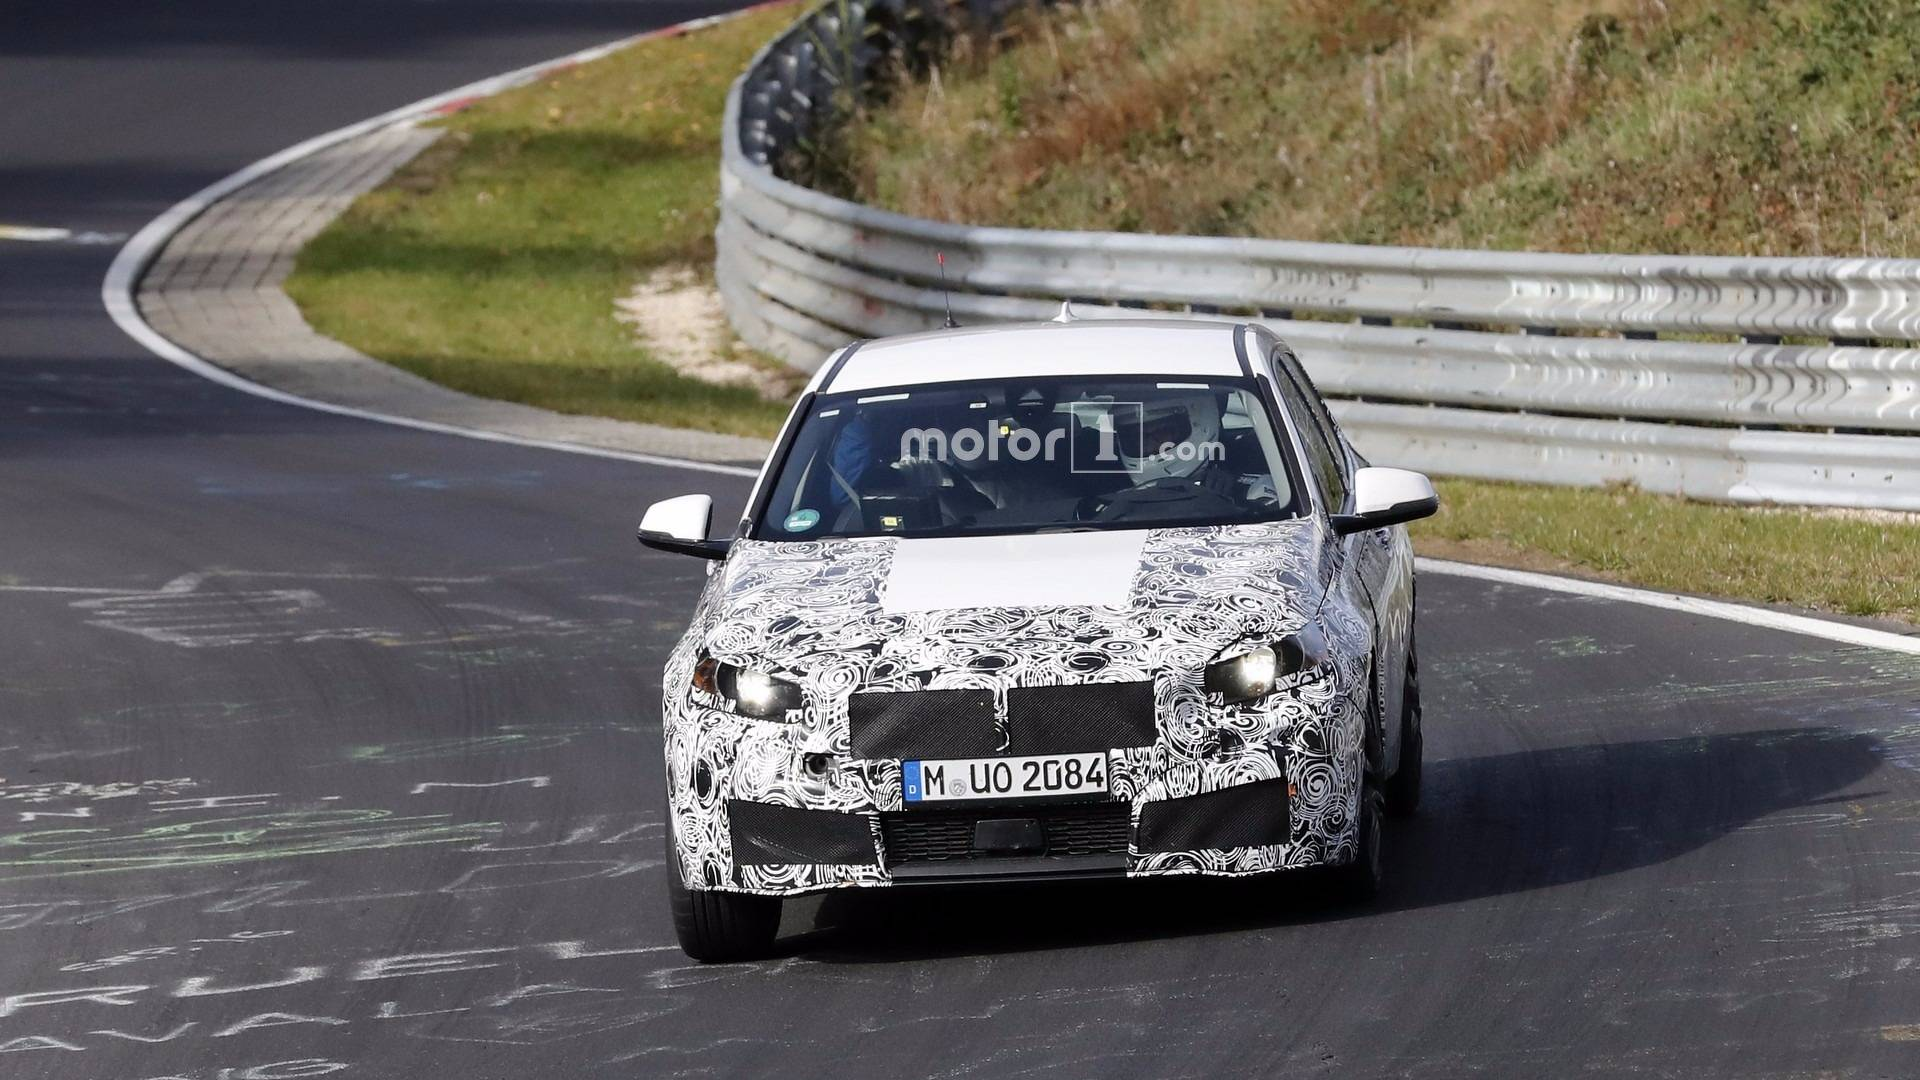 Next Generation Bmw 1 Series Spotted With Production Lights